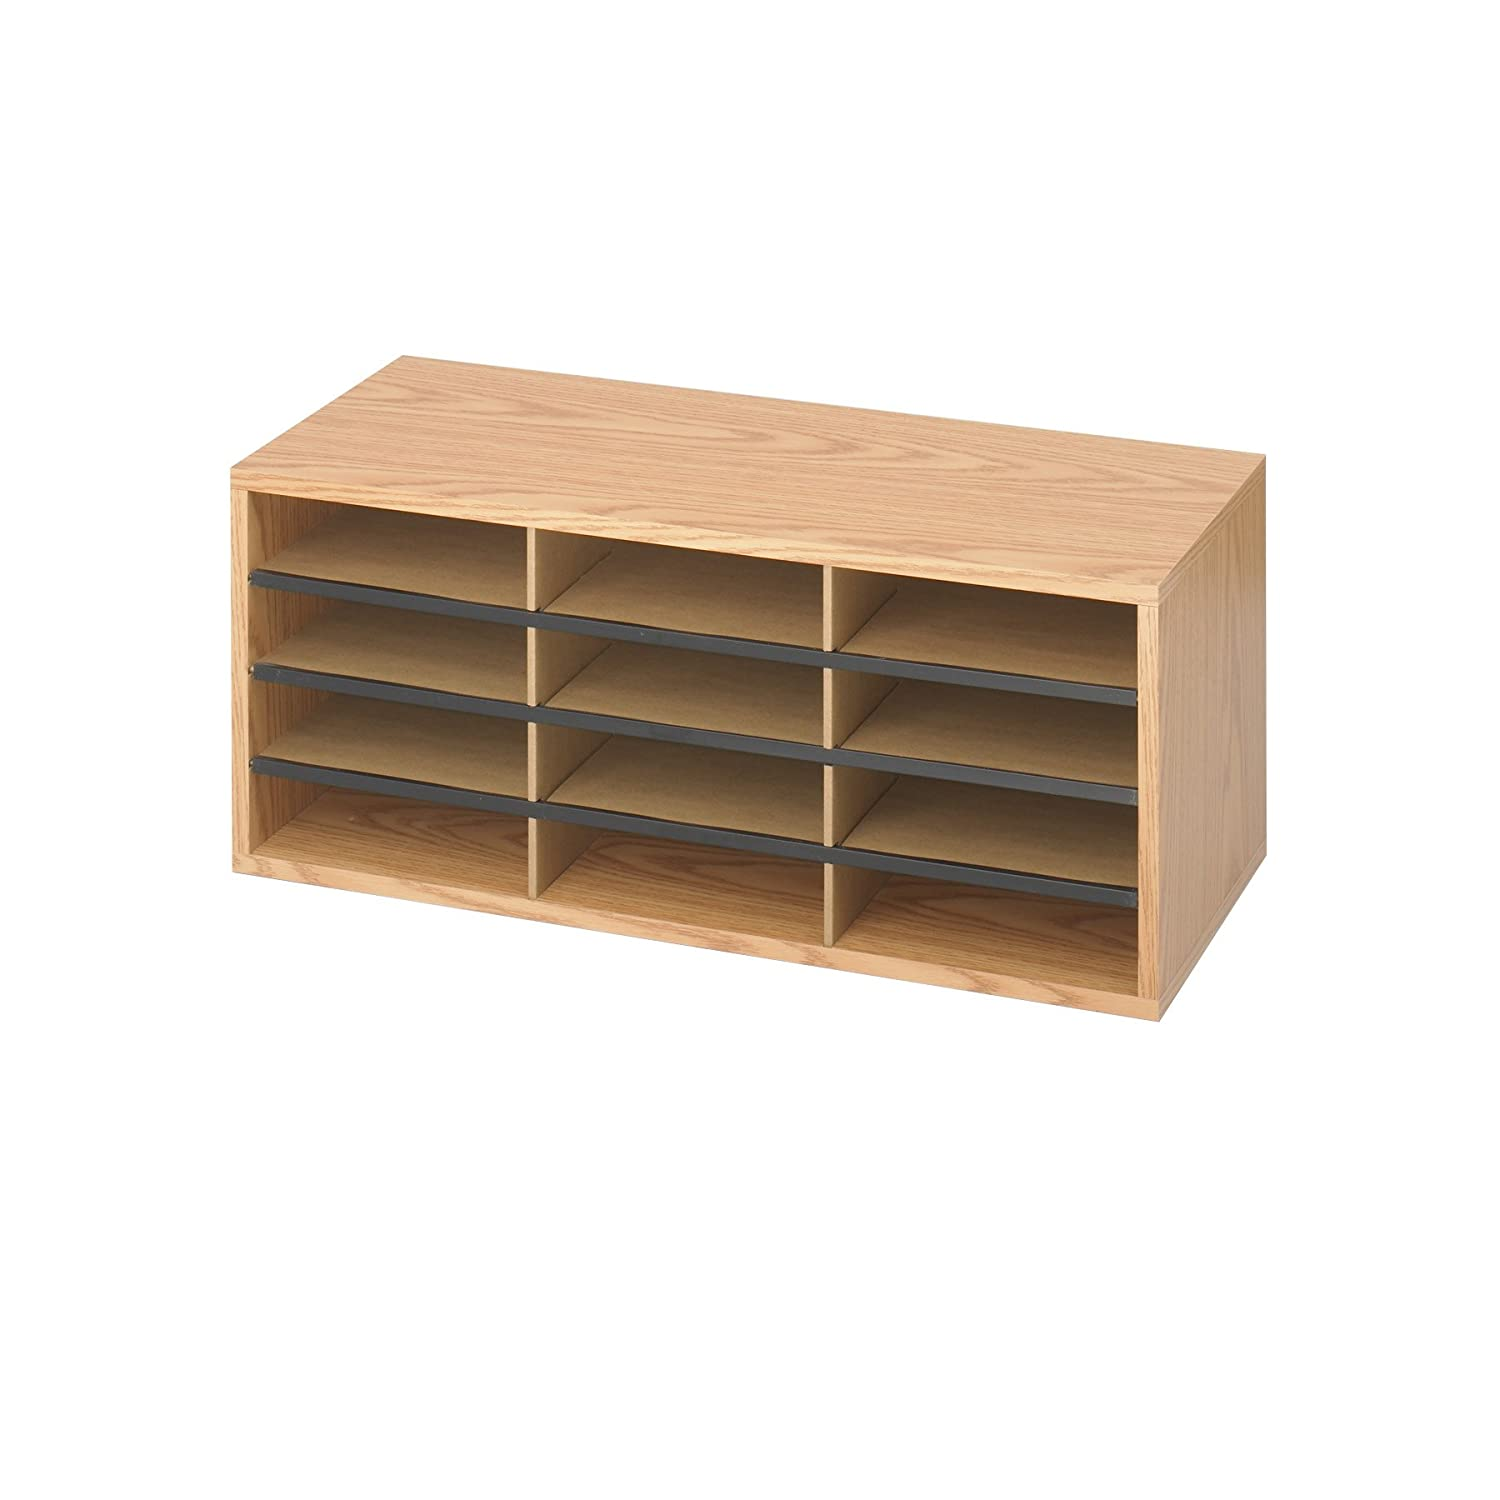 fast paper compartment a sorter amazon co uk office products safco 12 compartment literature organiser oak